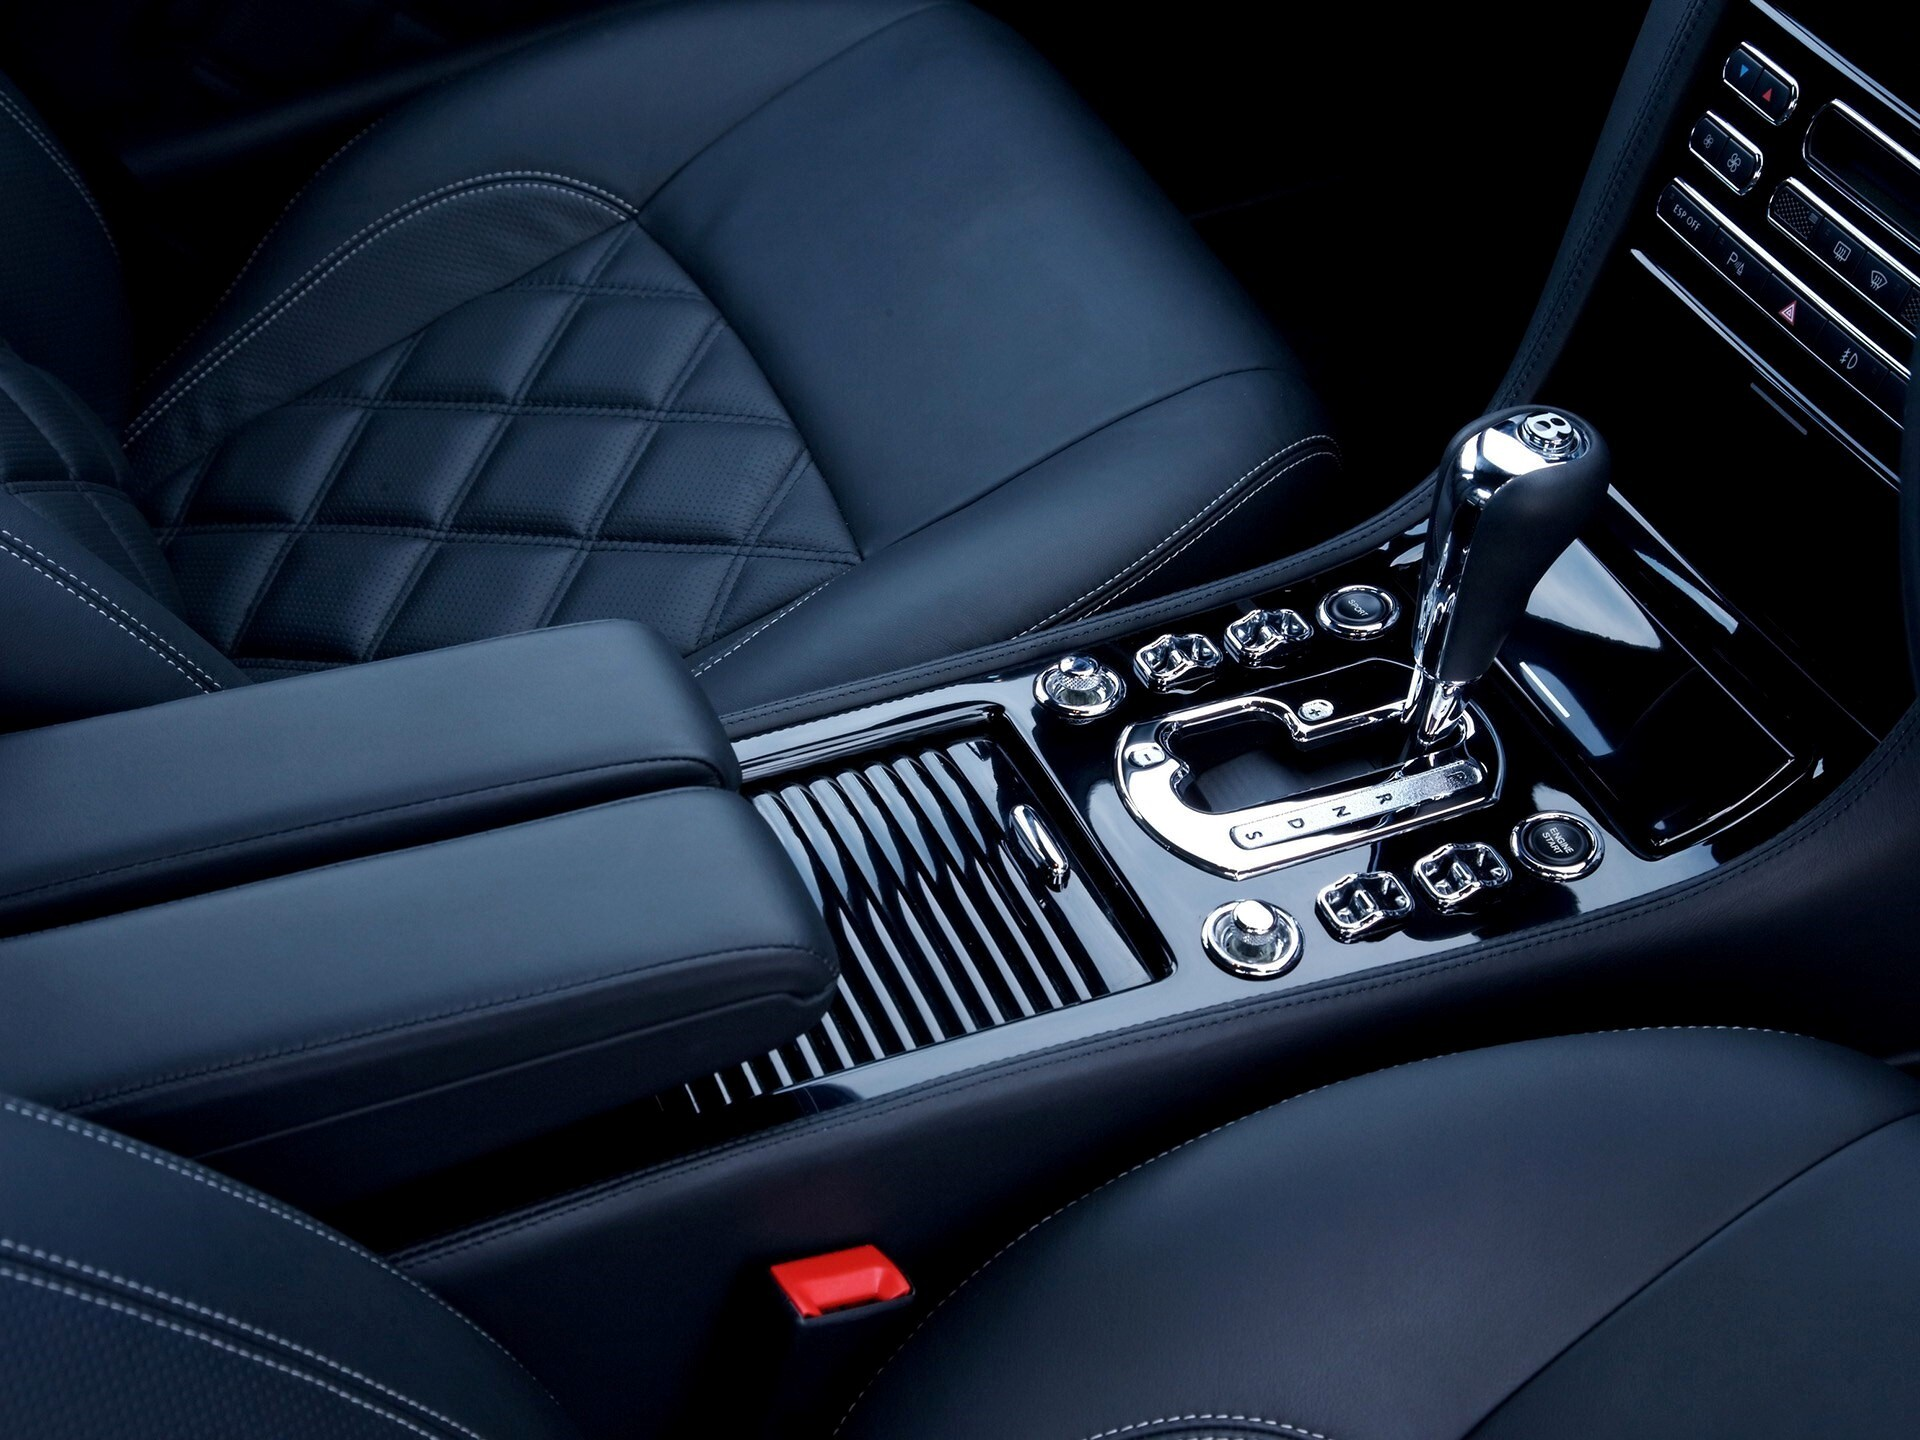 Car interior material - Other Cars Wallpapers Previous Wallpaper Bayer Material Science Car Interior